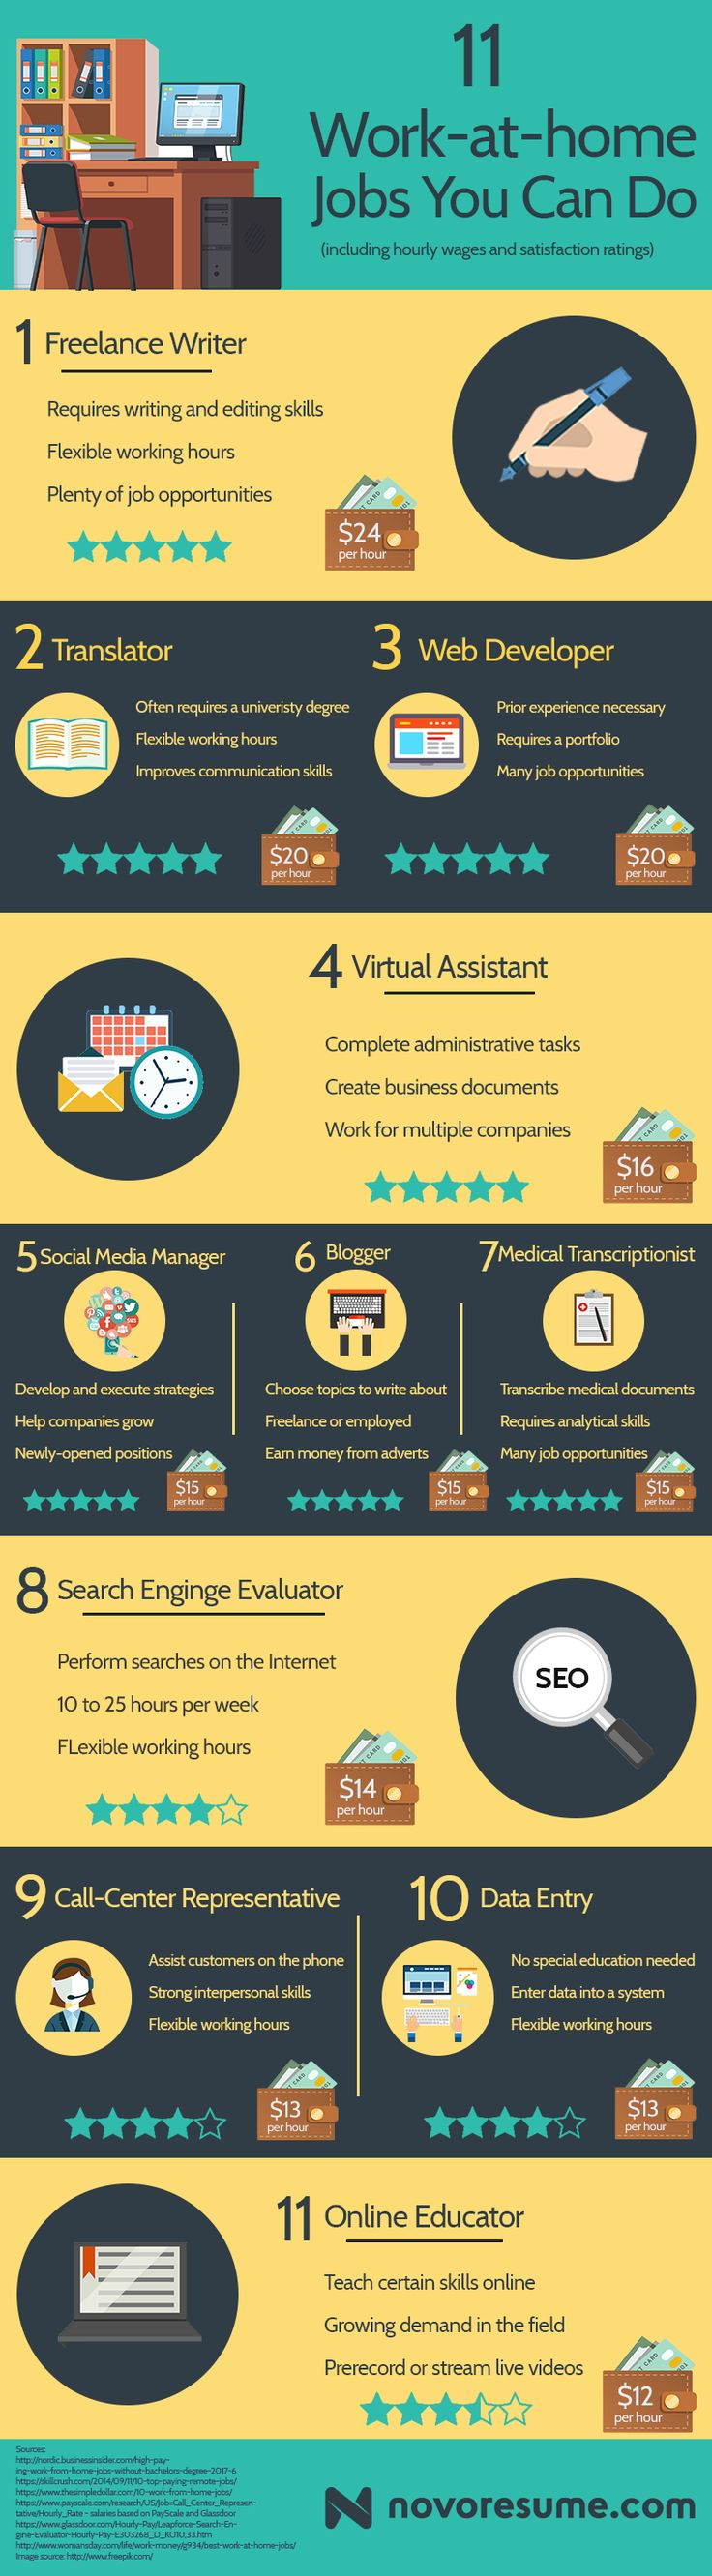 11 Work-at-home Jobs You Can Do [Salaries and Satisfaction Rate] #infographic http://bit.ly/2mvUxoF